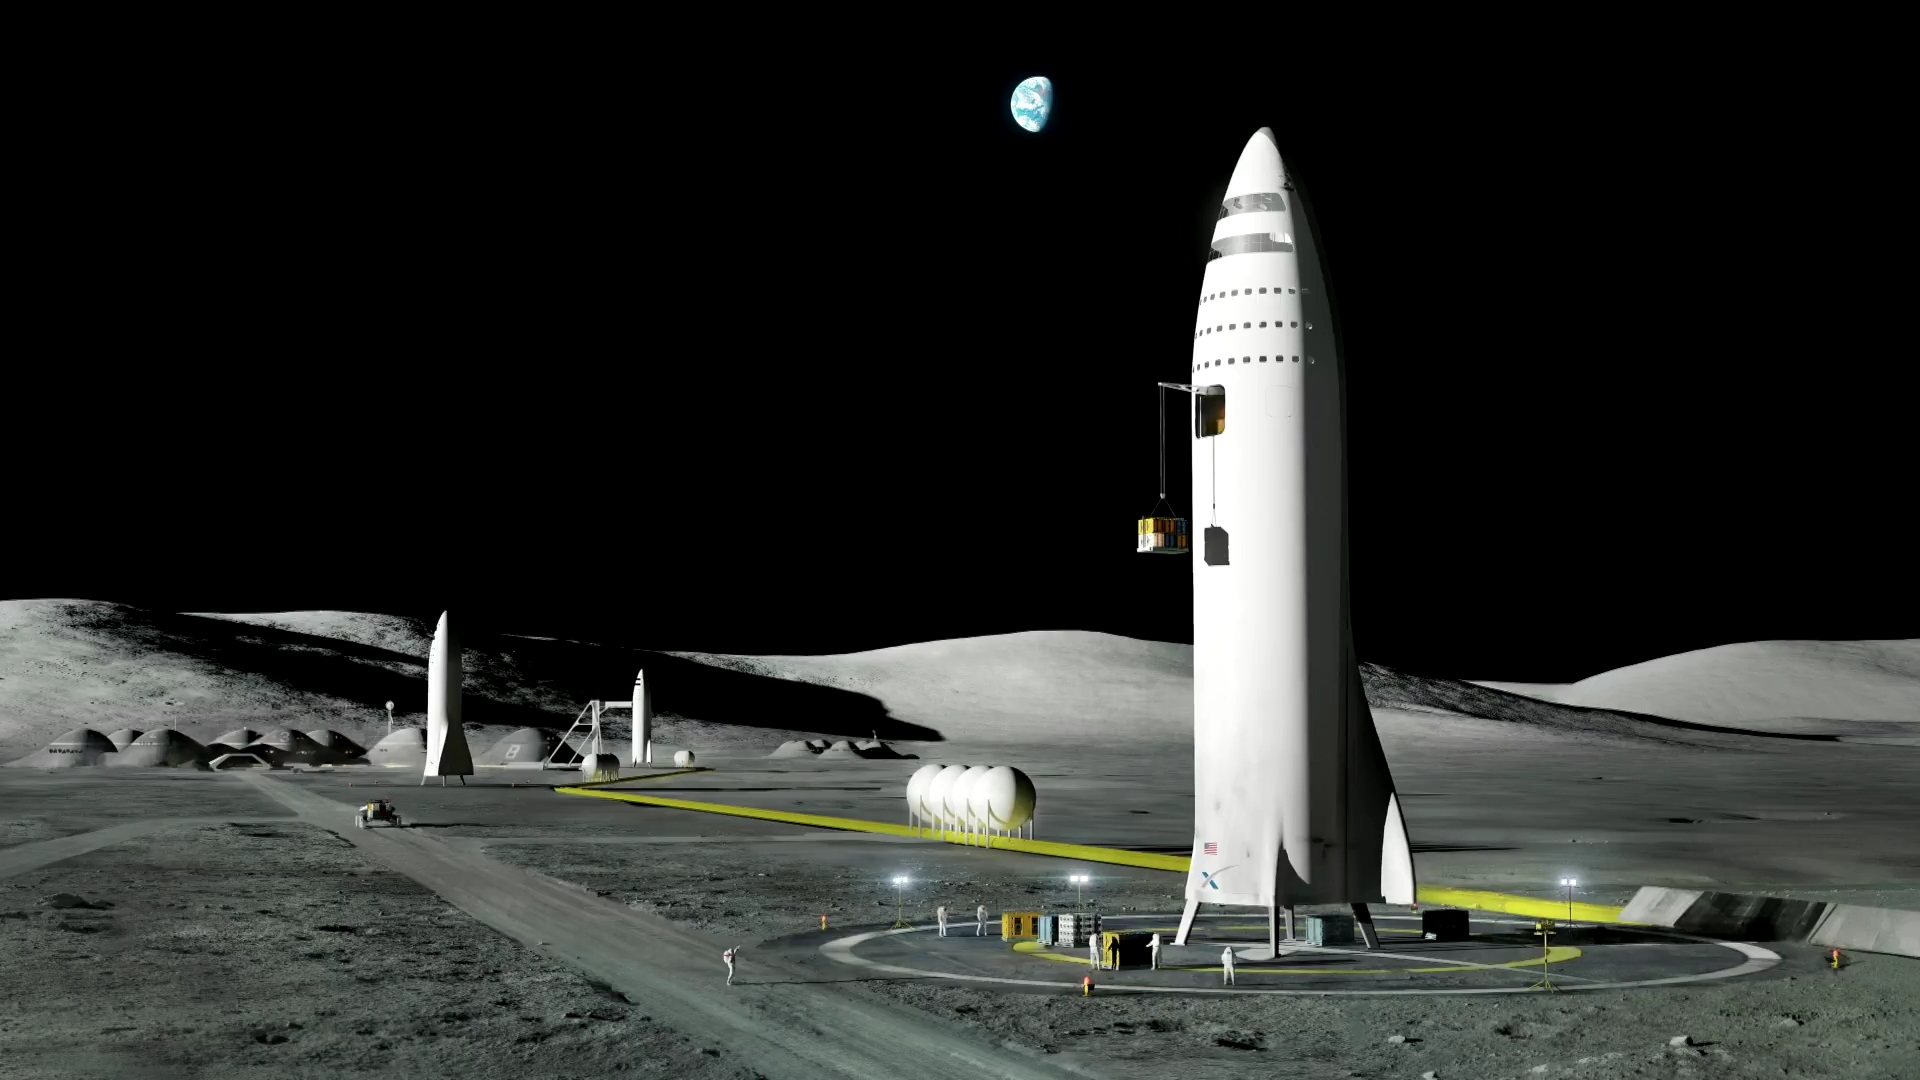 I am Elon Musk, ask me anything about BFR! : space